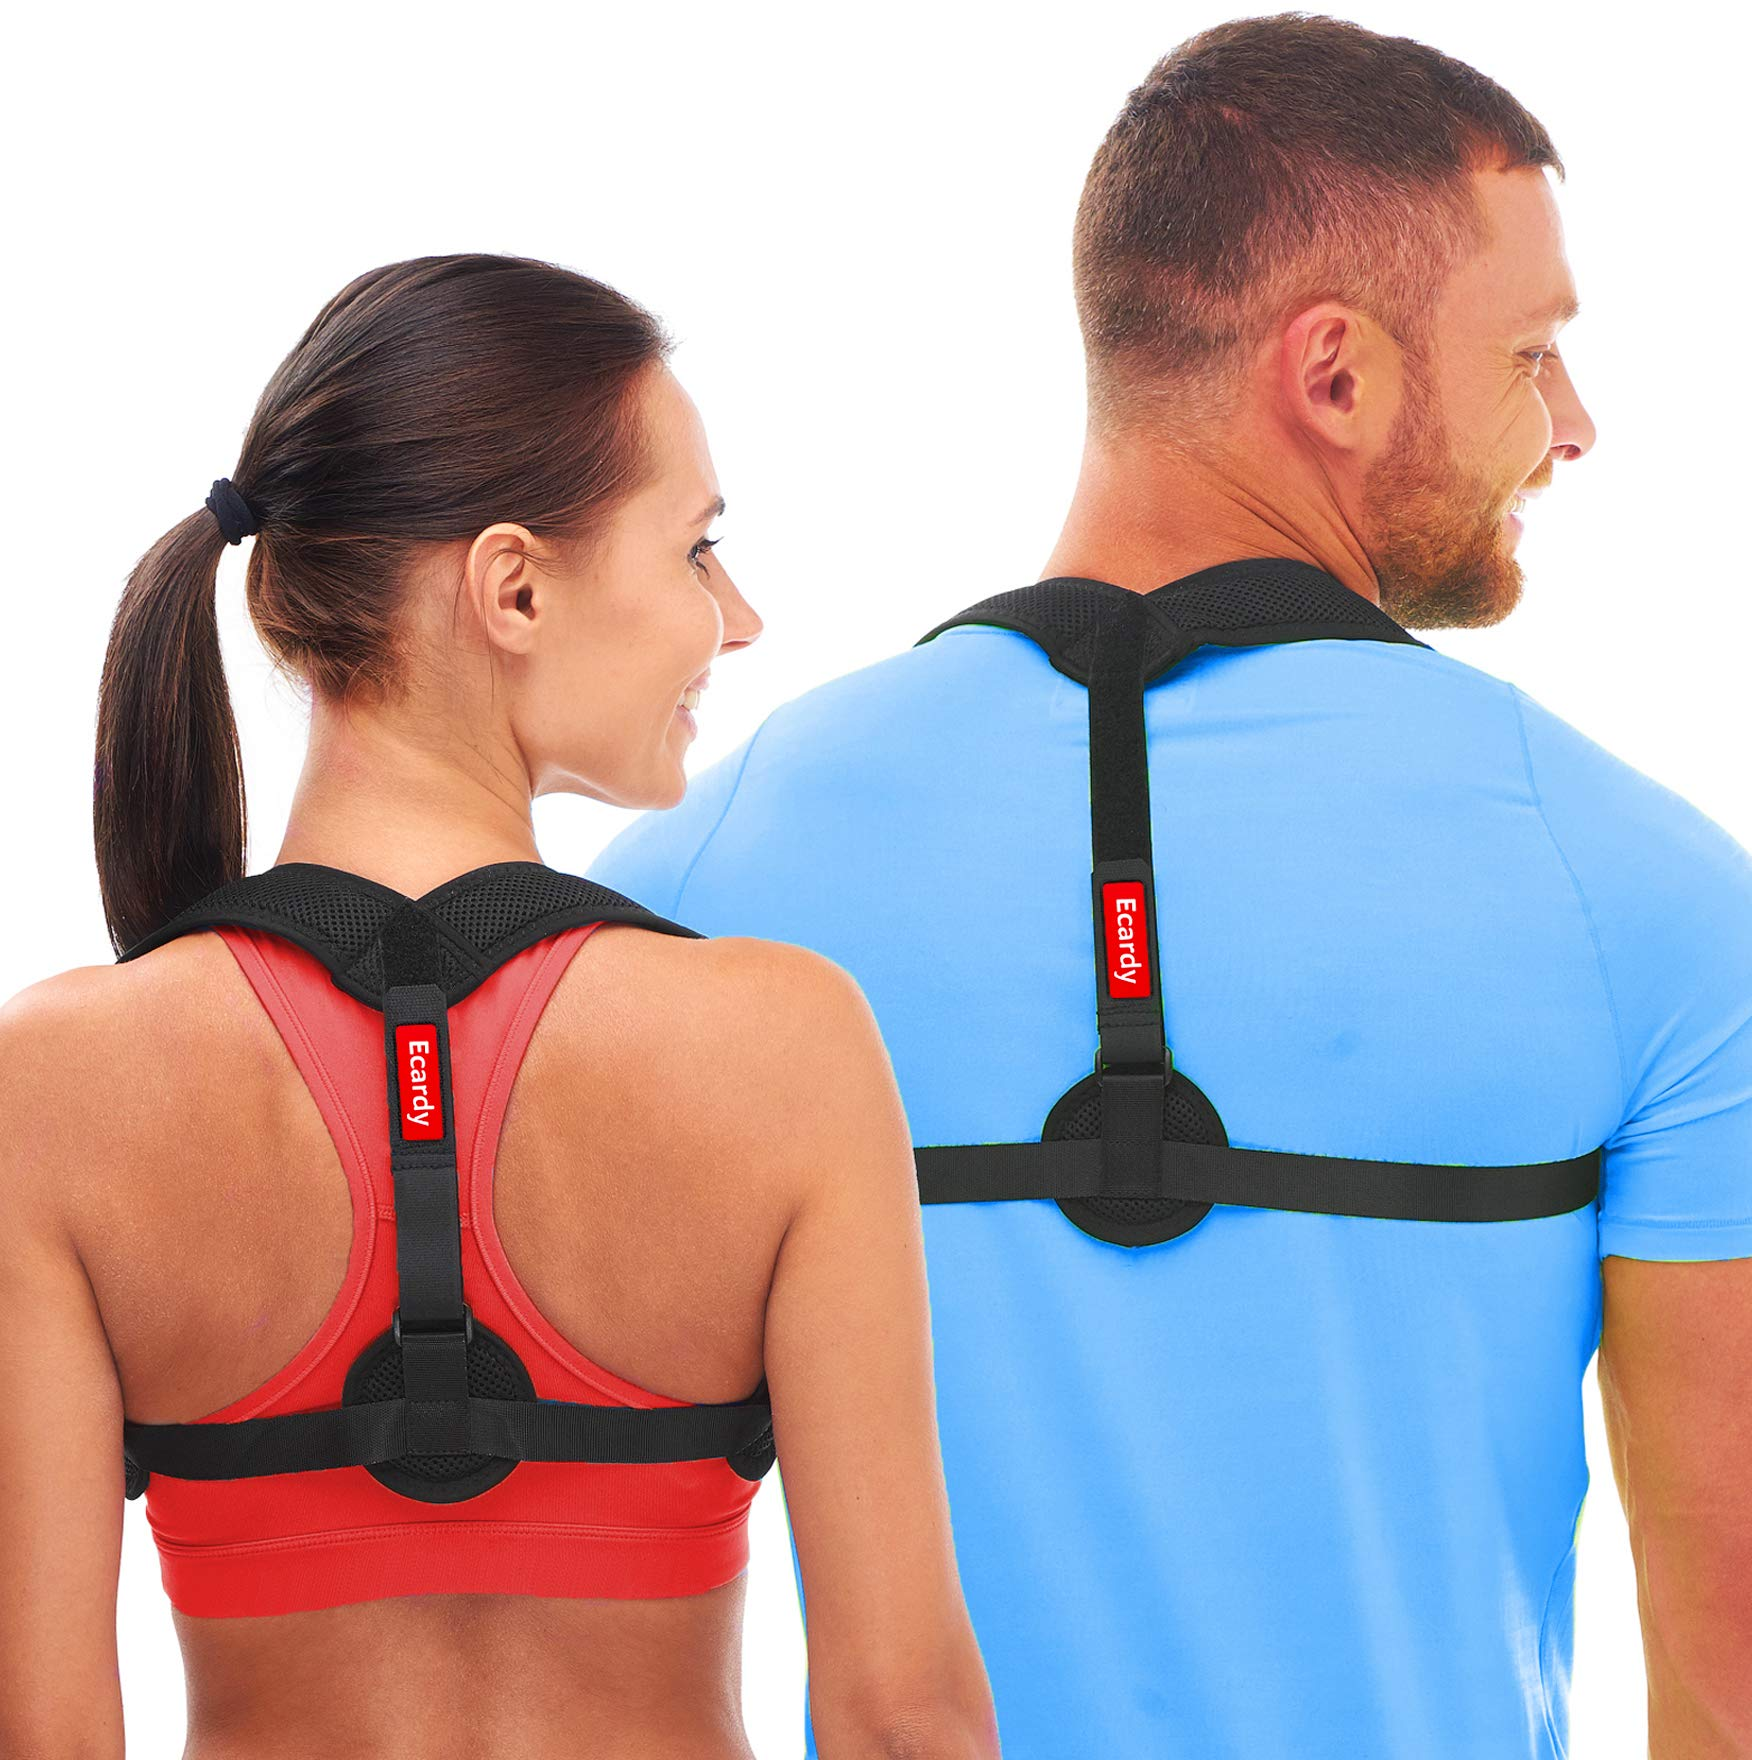 Ecardy Back Posture Corrector for Women & Men - Effective and Comfortable Posture Brace for Slouching & Hunching - Discreet Design – Posture Chest Supports